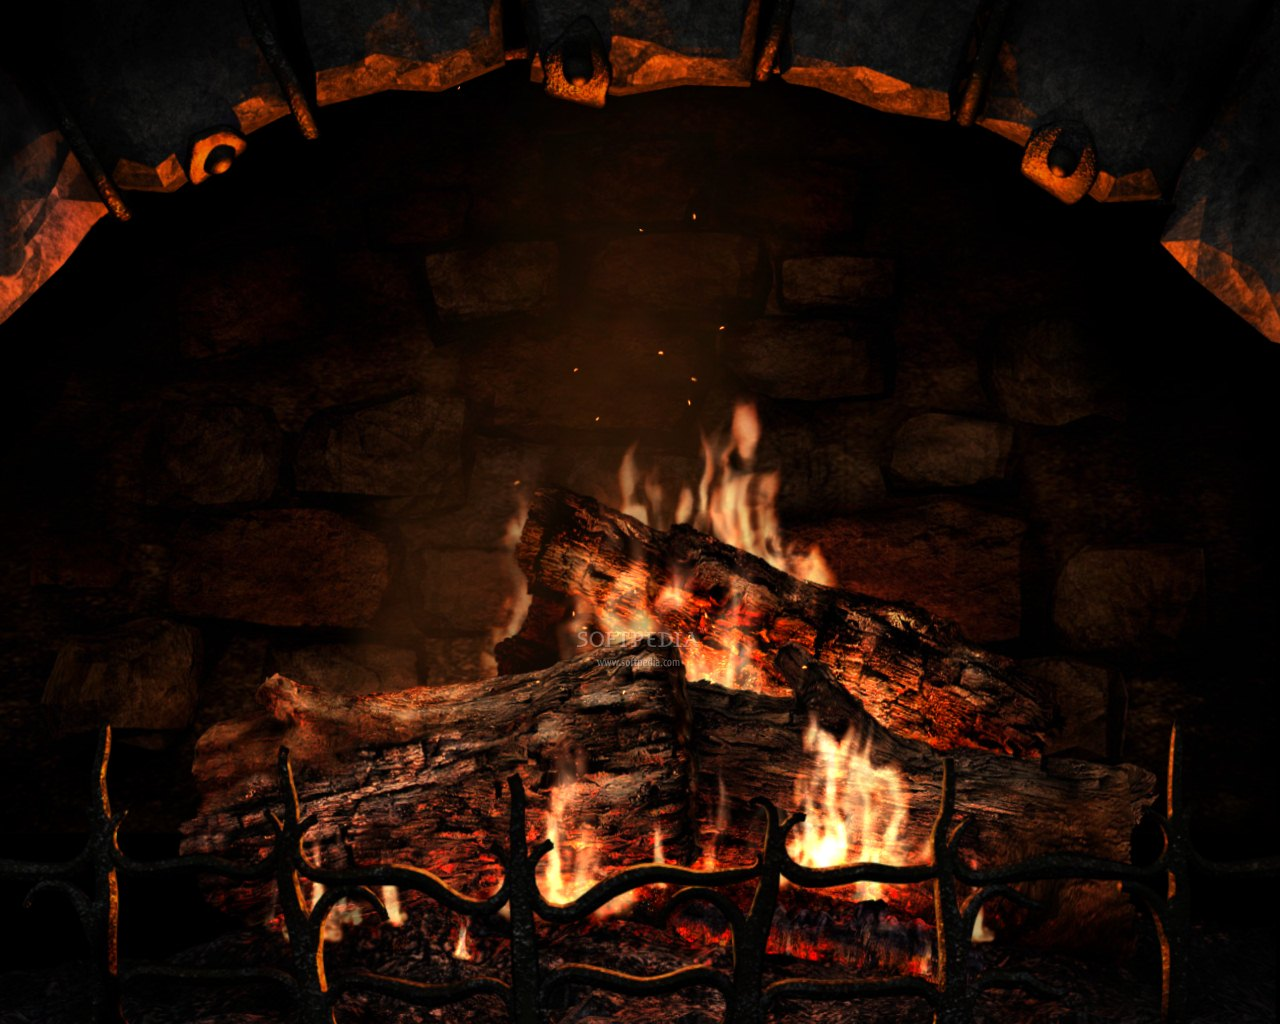 Fireplace Wallpaper